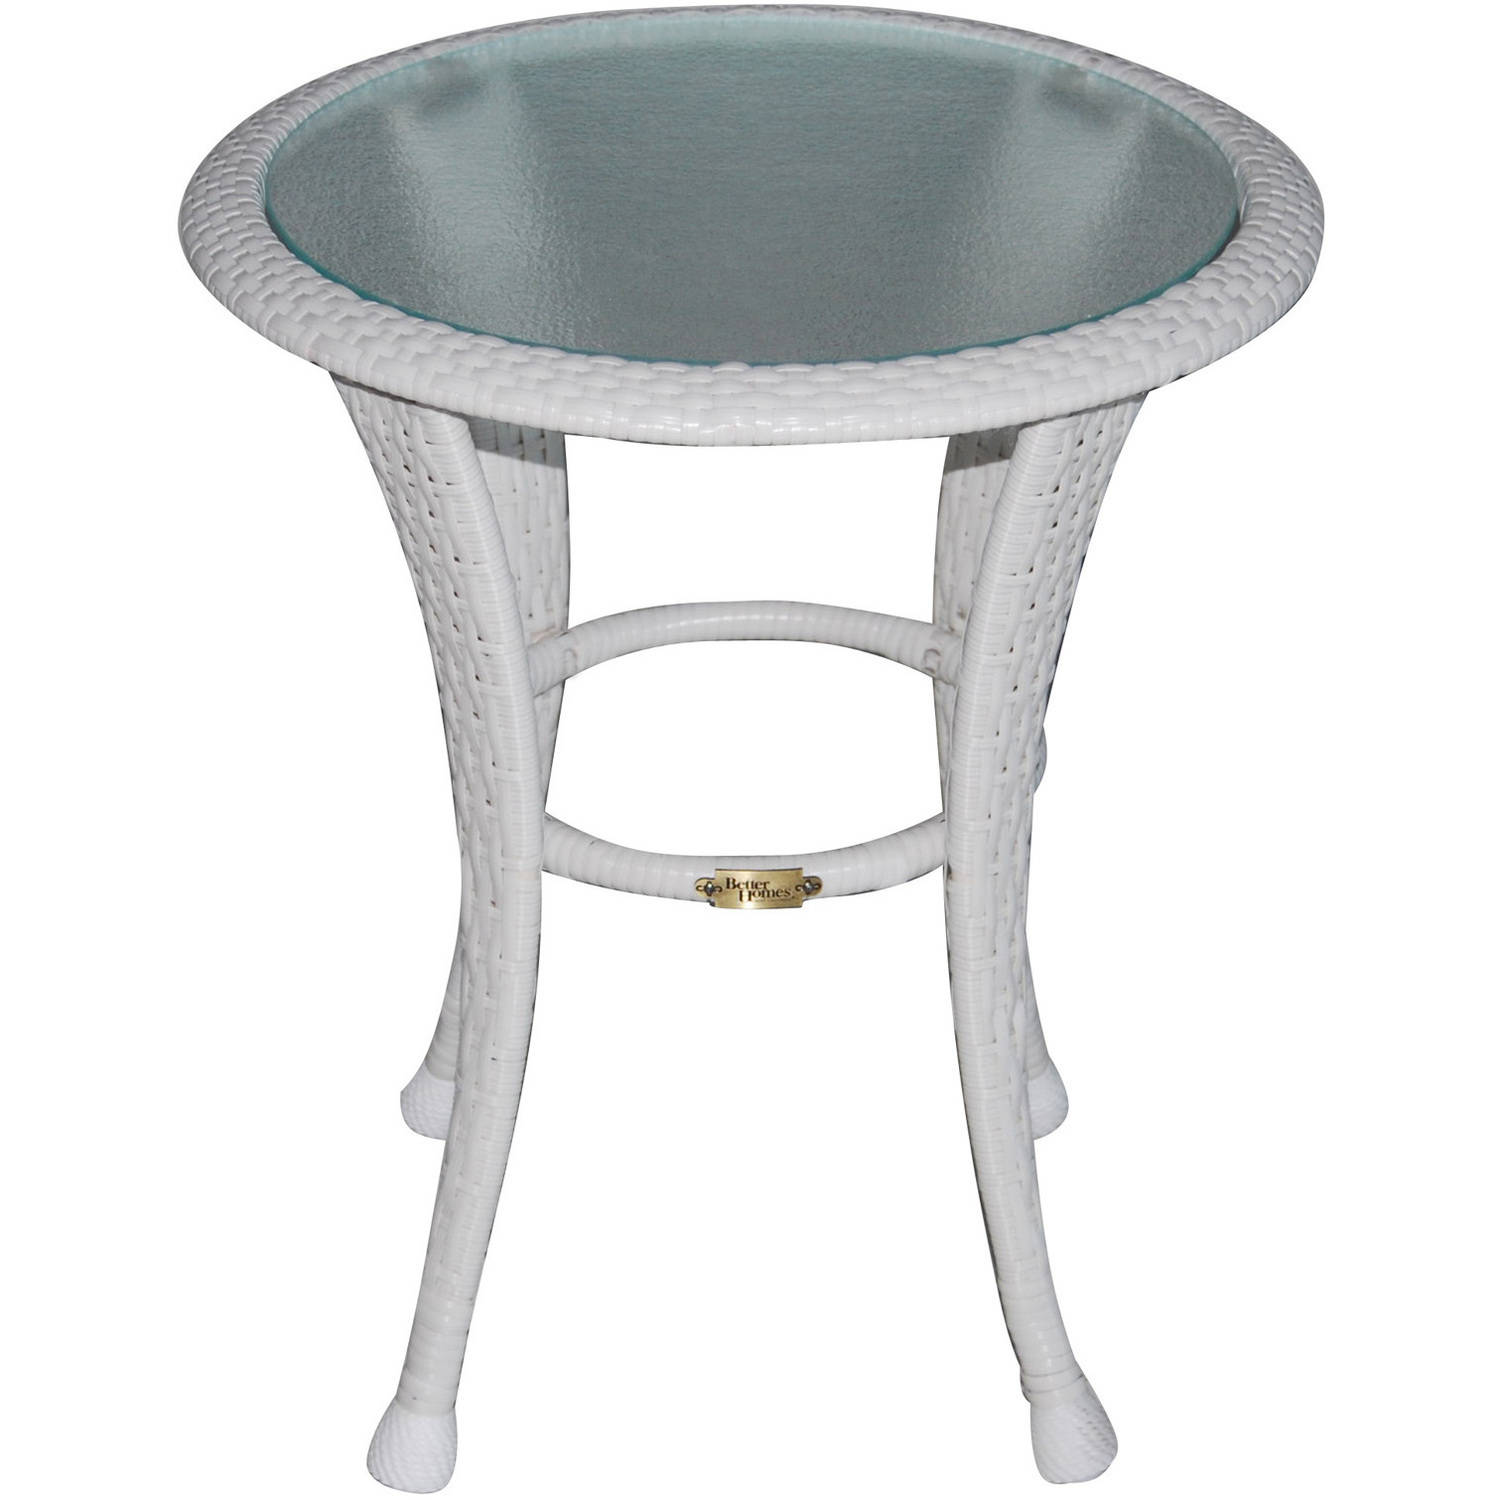 better homes and gardens azalea ridge round outdoor side table metal target file cabinet wood for furniture dining antique marble top industrial bedside small battery operated